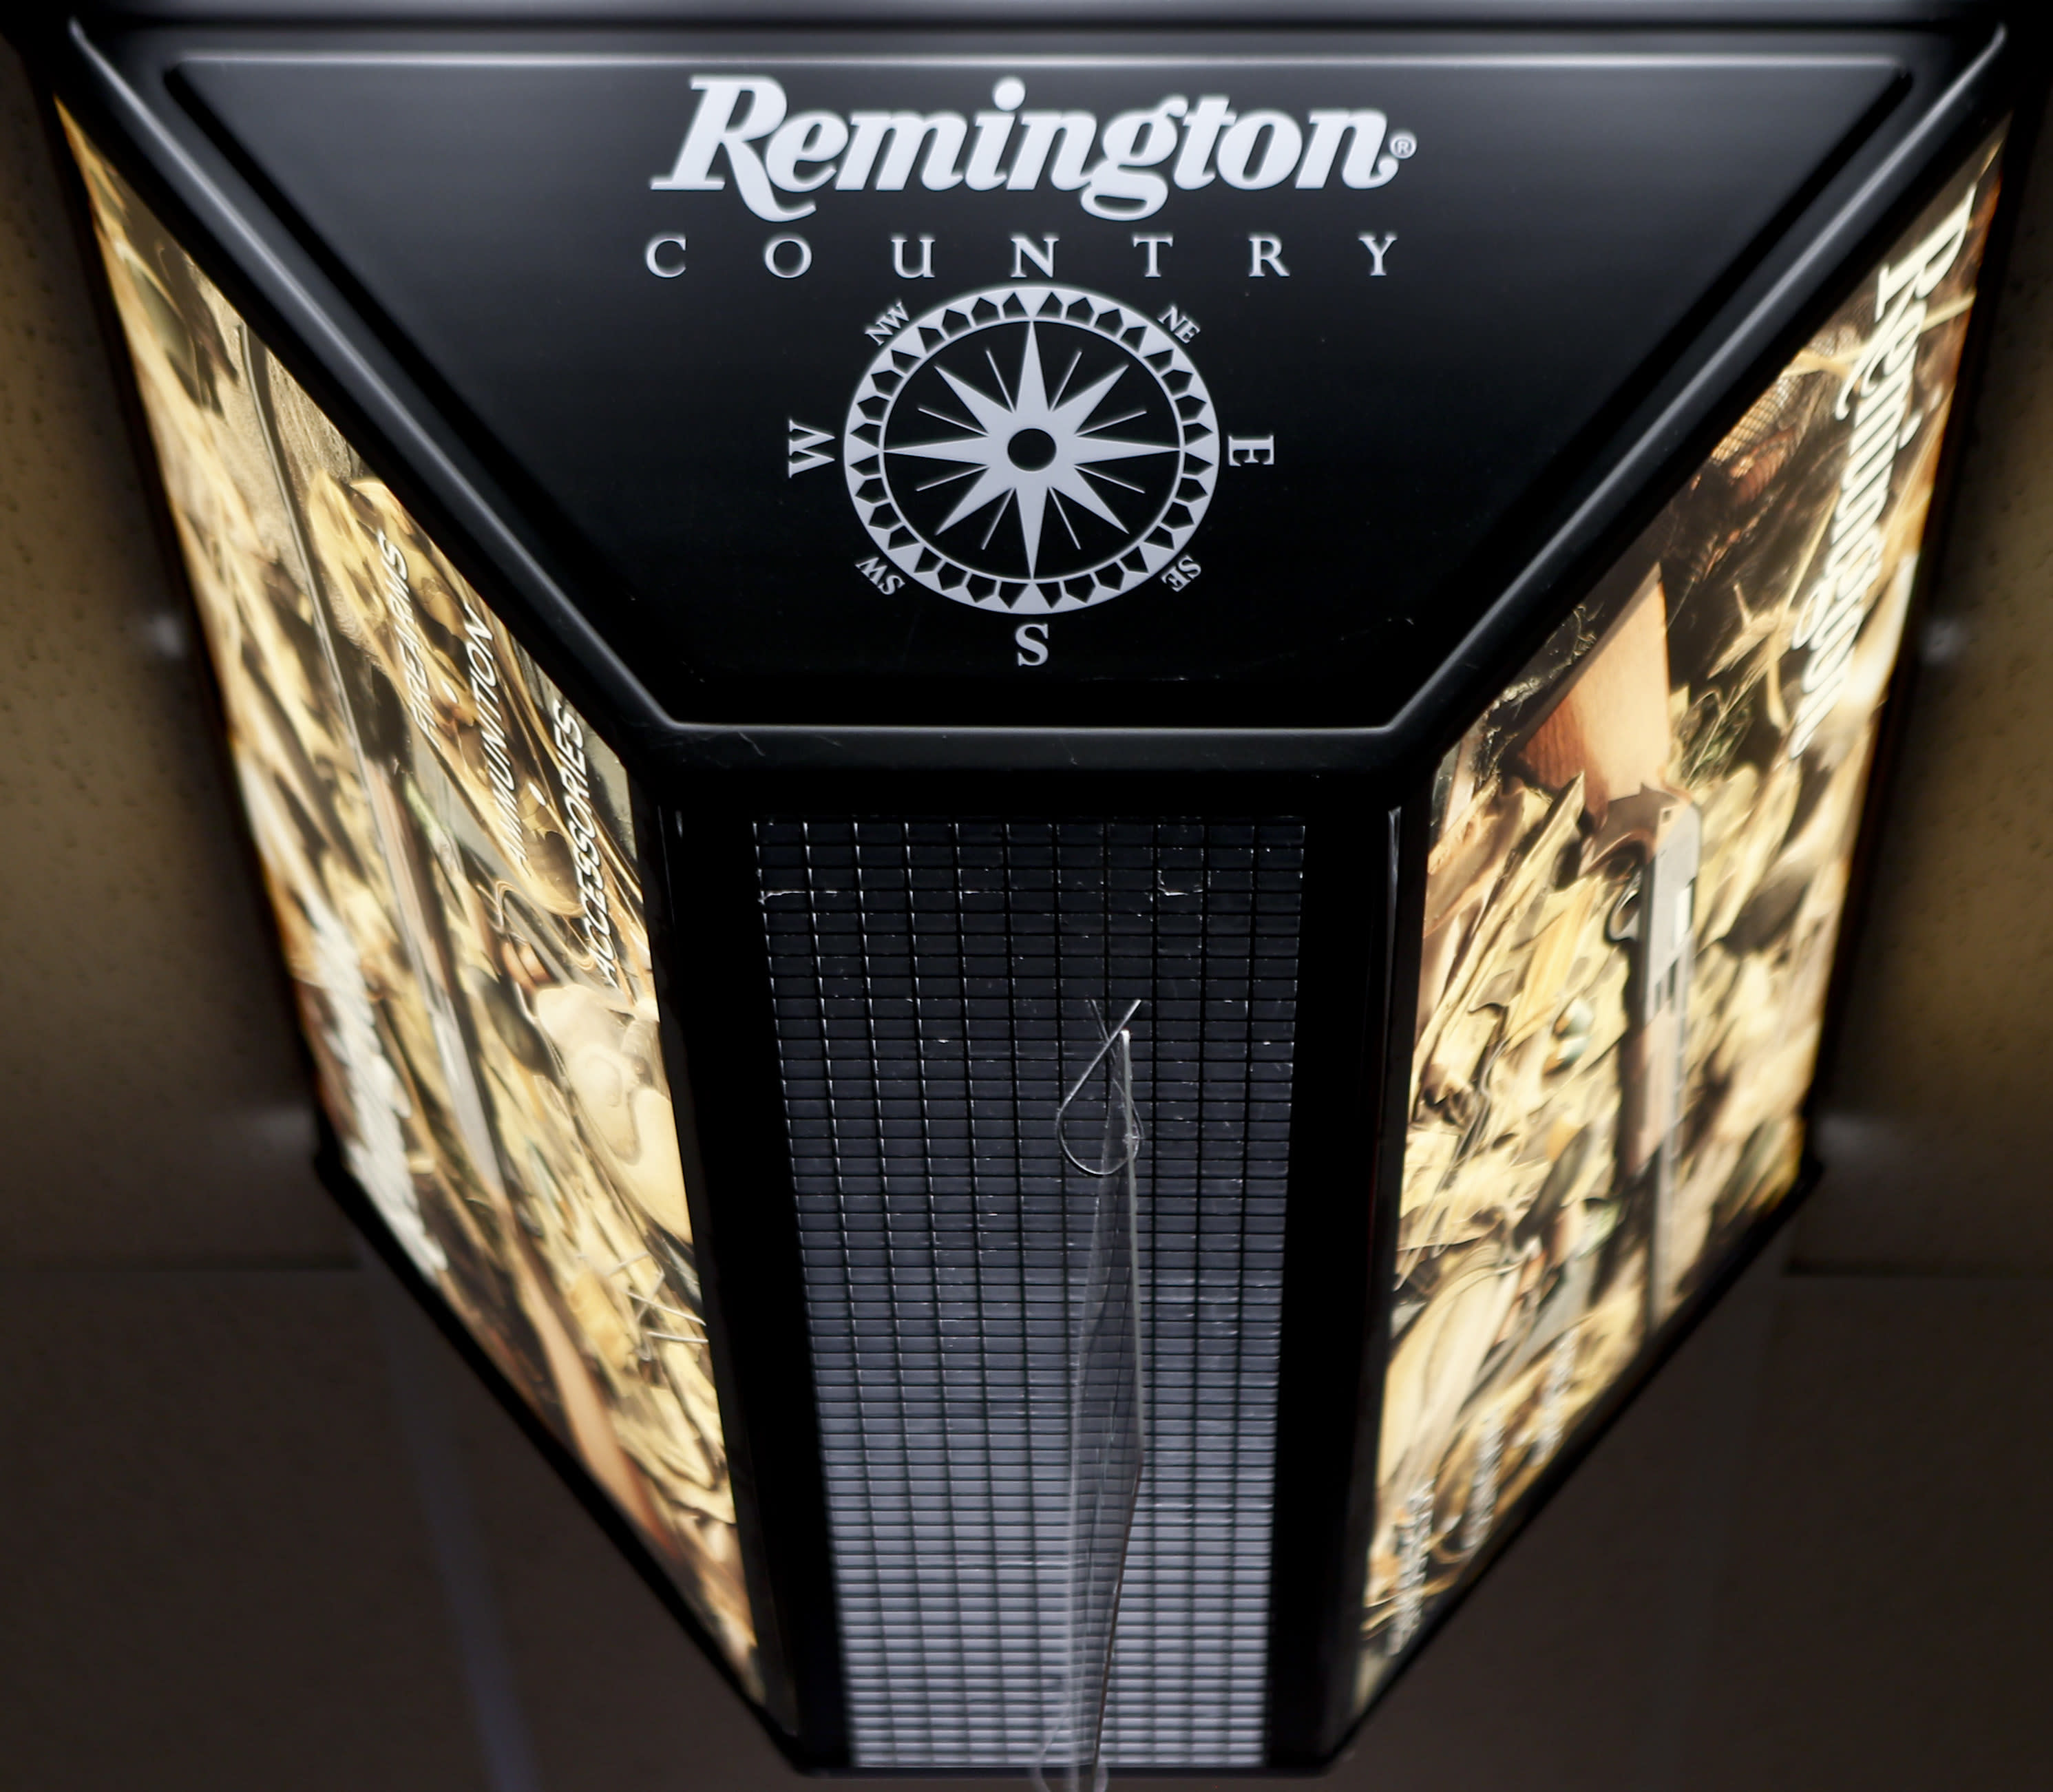 FILE - In this March 1, 2018 file photo, a light advertising Remington products hangs from the ceiling at Duke's Sport Shop in New Castle, Pa. For years, the gun industry has been immune from most lawsuits, but a recent ruling allowing families of victims in the Newton school shooting to challenge the way an AR-15 used by the shooter was marketed is upending that longstanding roadblock. The U.S. Supreme Court recently rejected efforts by gunmaker Remington to quash the lawsuit, allowing it to continue to be heard in Connecticut courts.(AP Photo/Keith Srakocic, File)